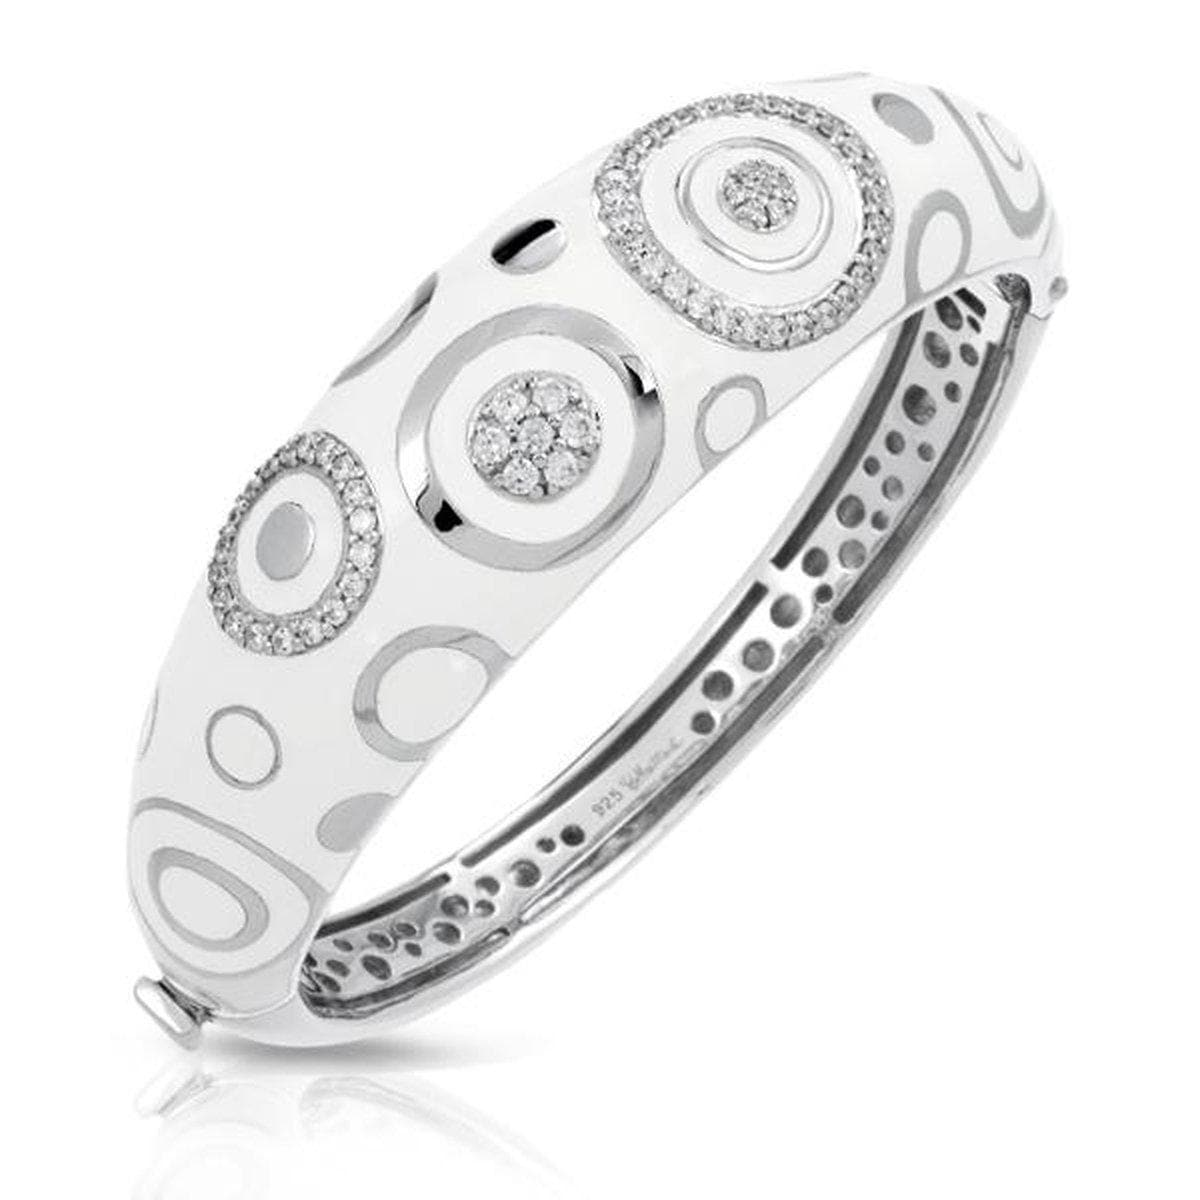 Galaxy White Bangle-Belle Etoile-Renee Taylor Gallery